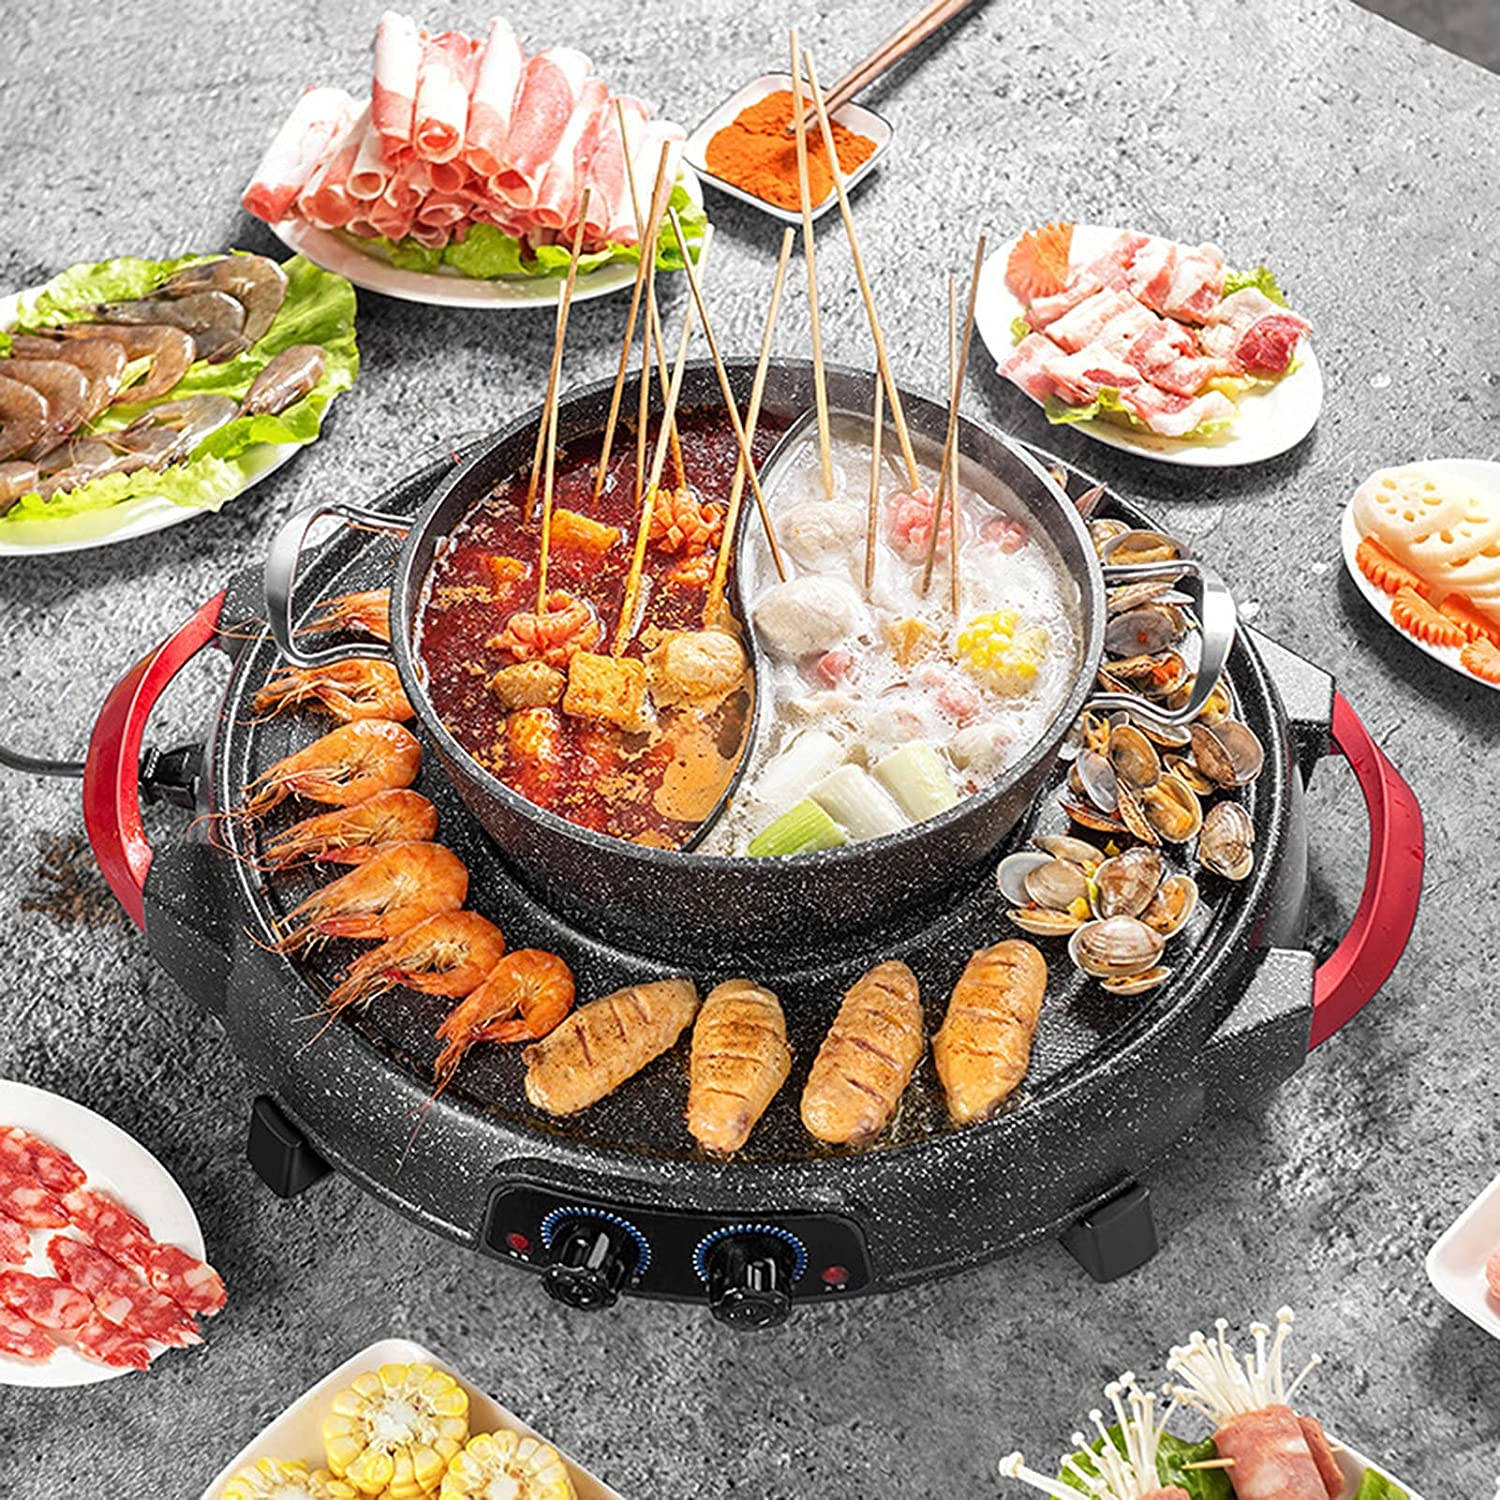 2300W BBQ Grill with Hot Popular products Pot 2 in and 1 Electric Indoor Sh Max 71% OFF